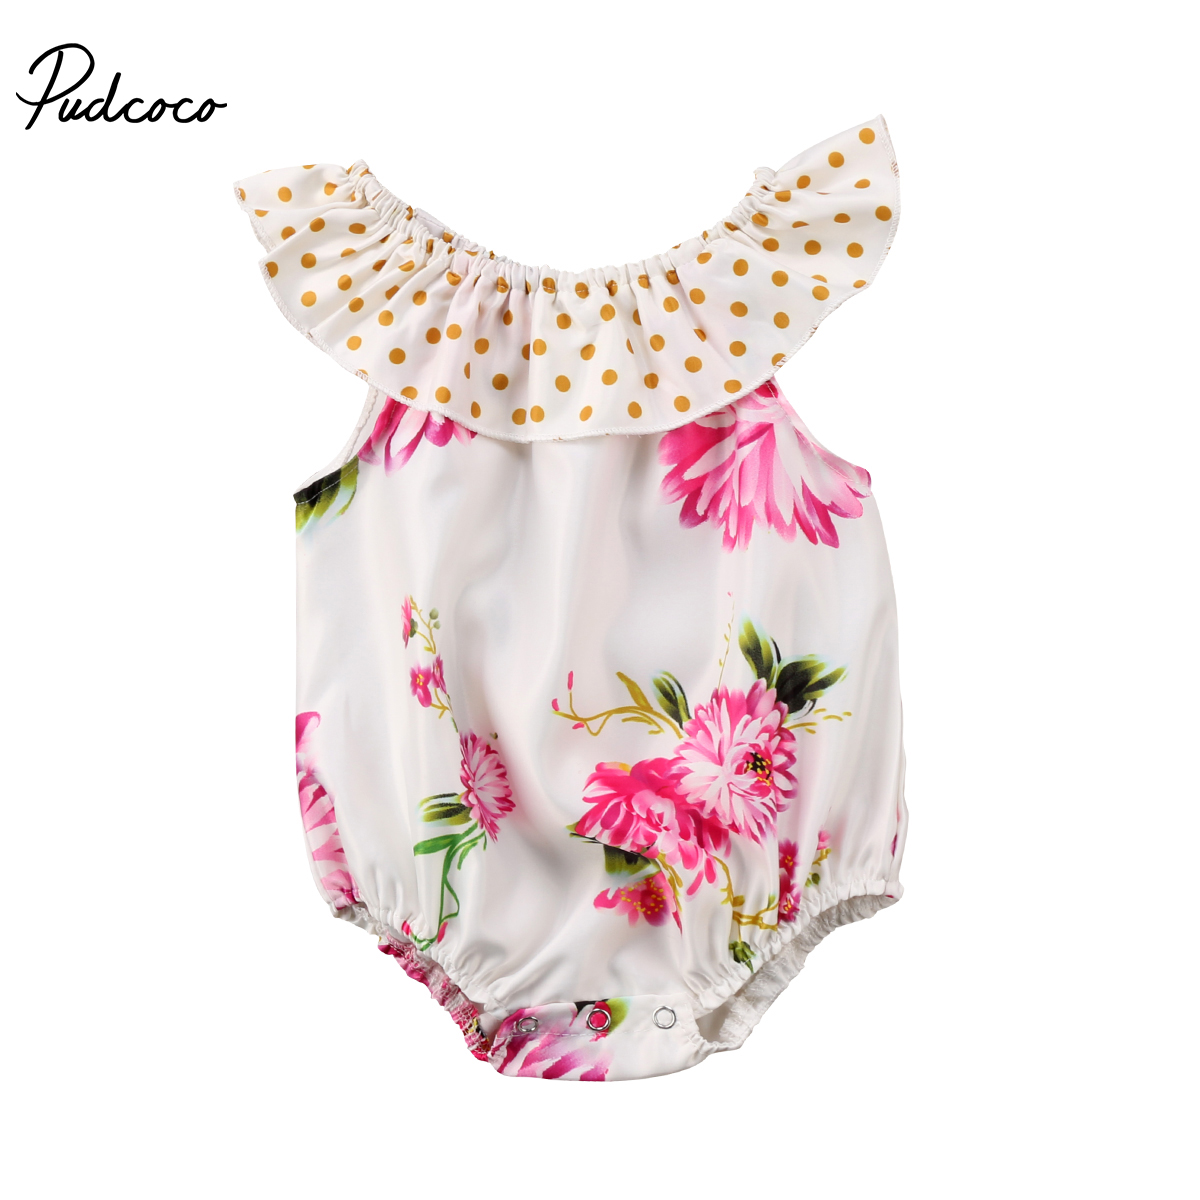 Flower Girls Clothing Newborn Baby Girls Floral Romper Jumpsuit Cute Baby Girls Clothes Outfit 0-2T